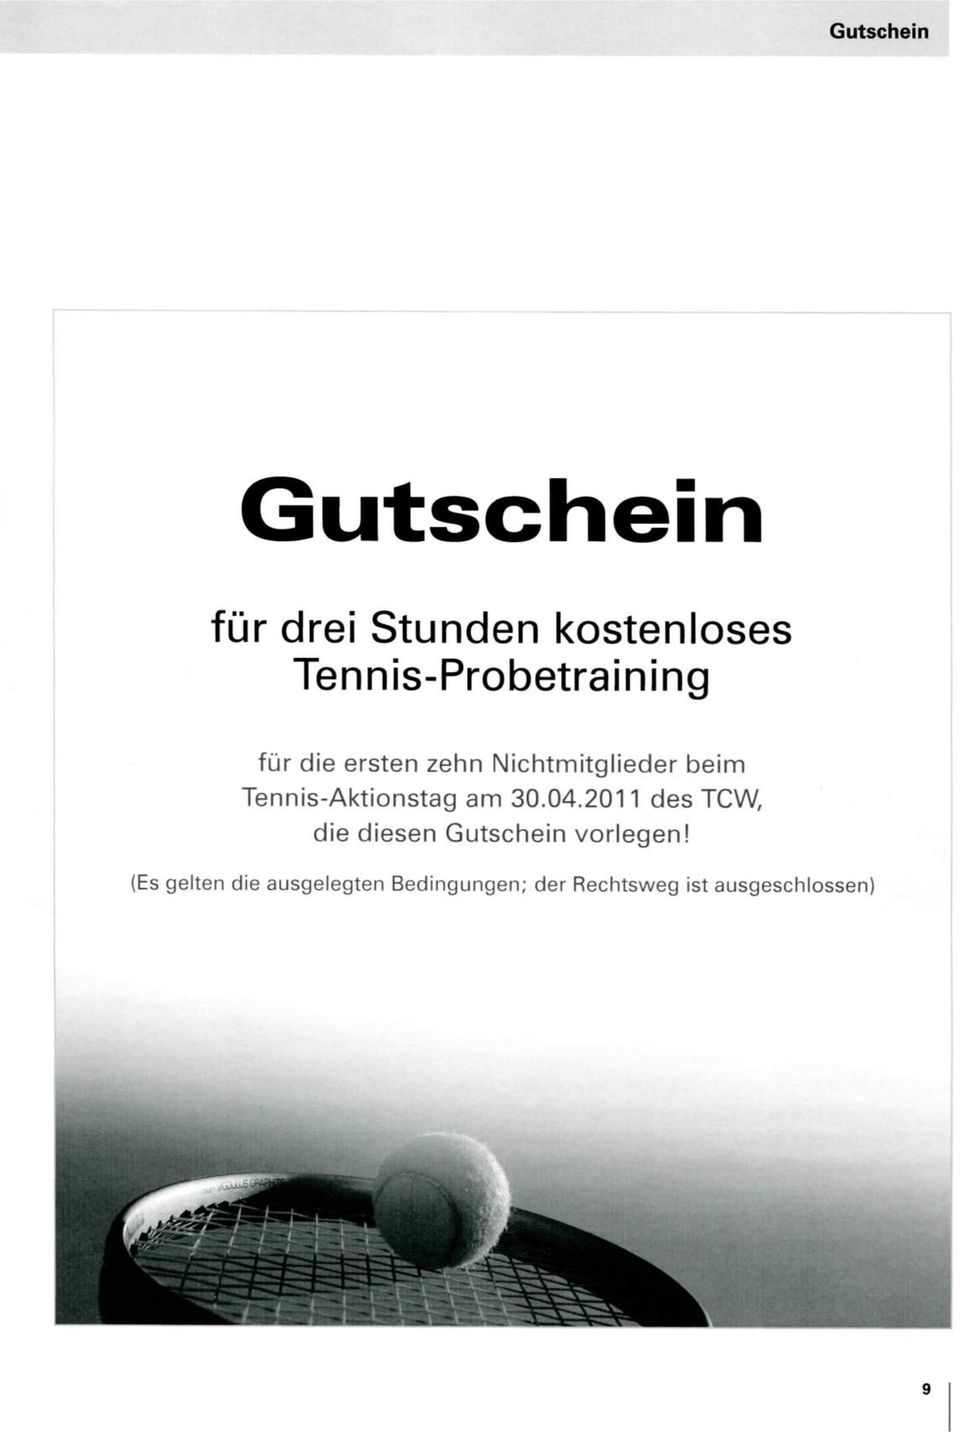 Tennis-Aktionstag am 30.04.